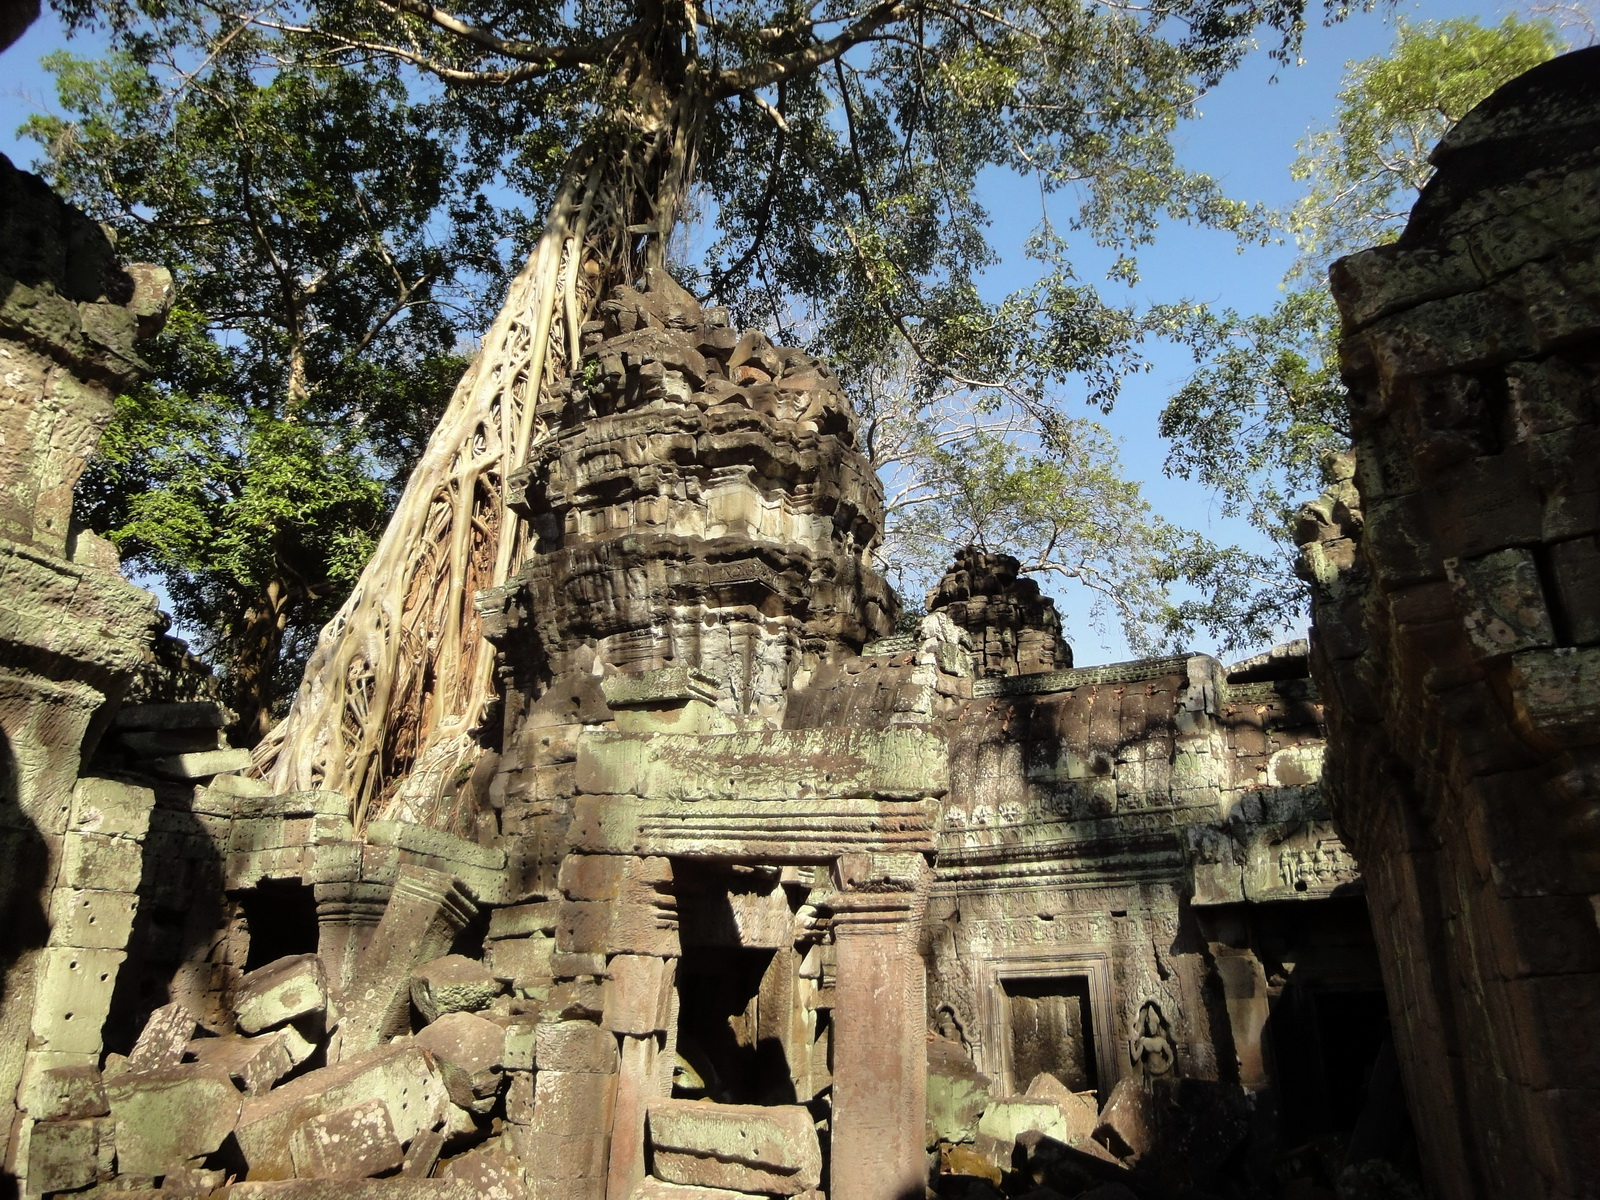 Ta Prohm Tomb Raider Bayon architecture central sanctuary area 07